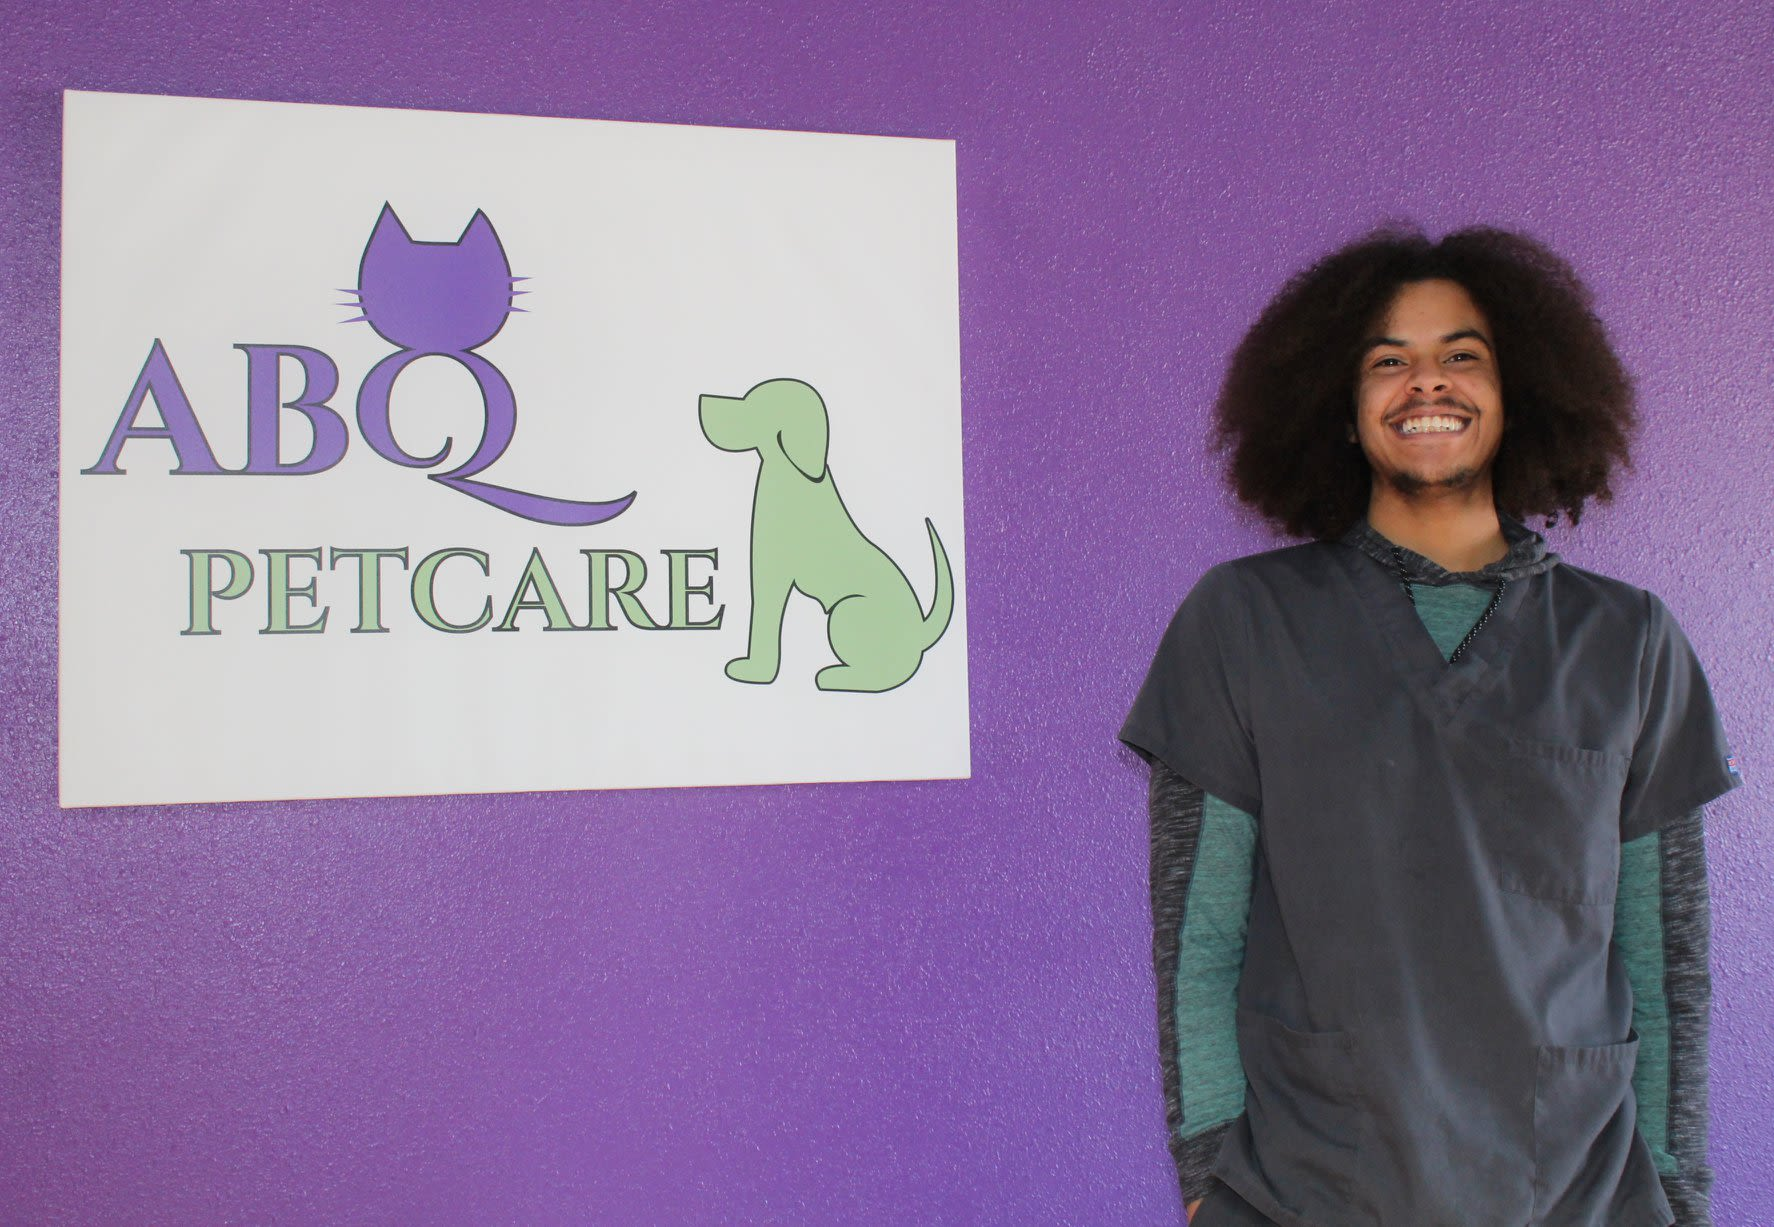 Adam Veterinary Technician at ABQ Petcare Hospital